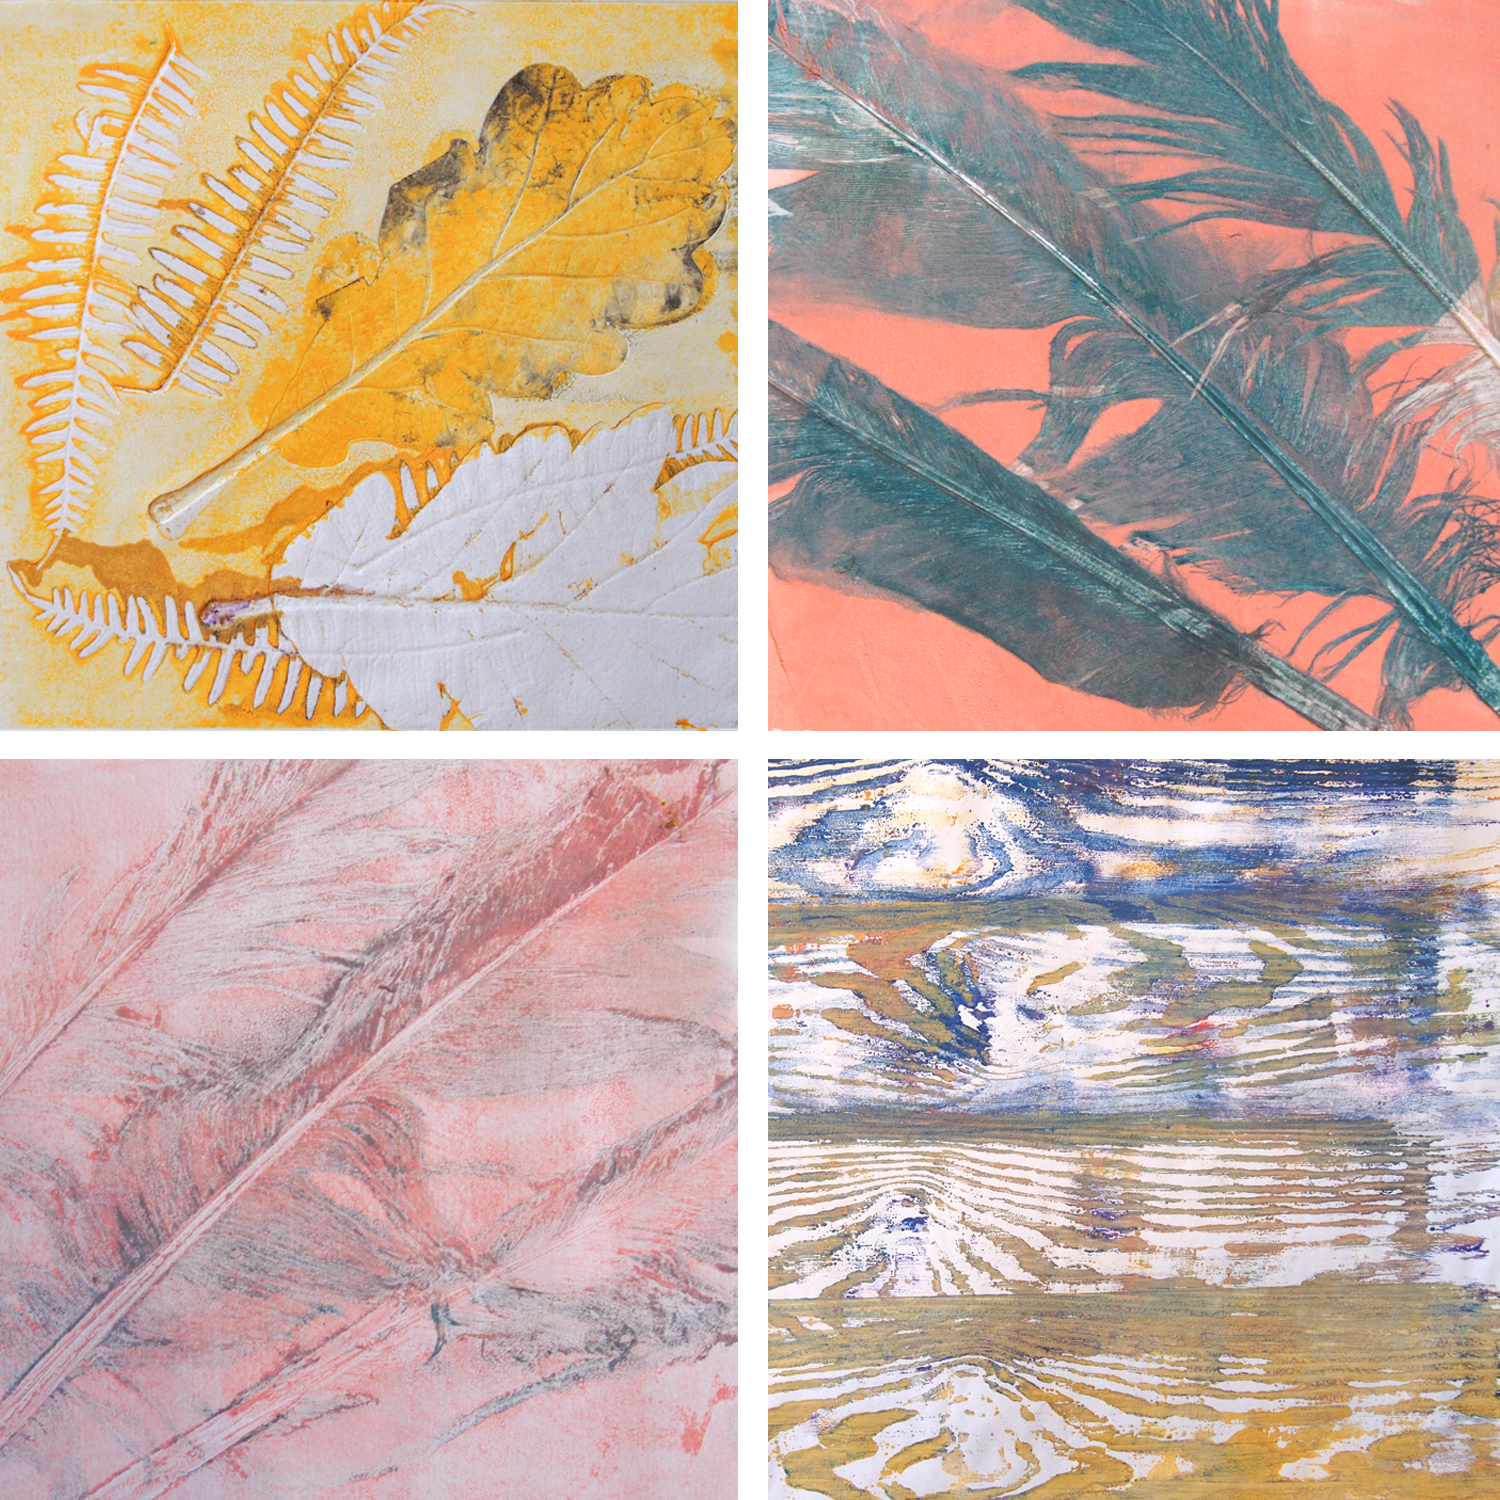 monoprints using feathers, leaves and wood